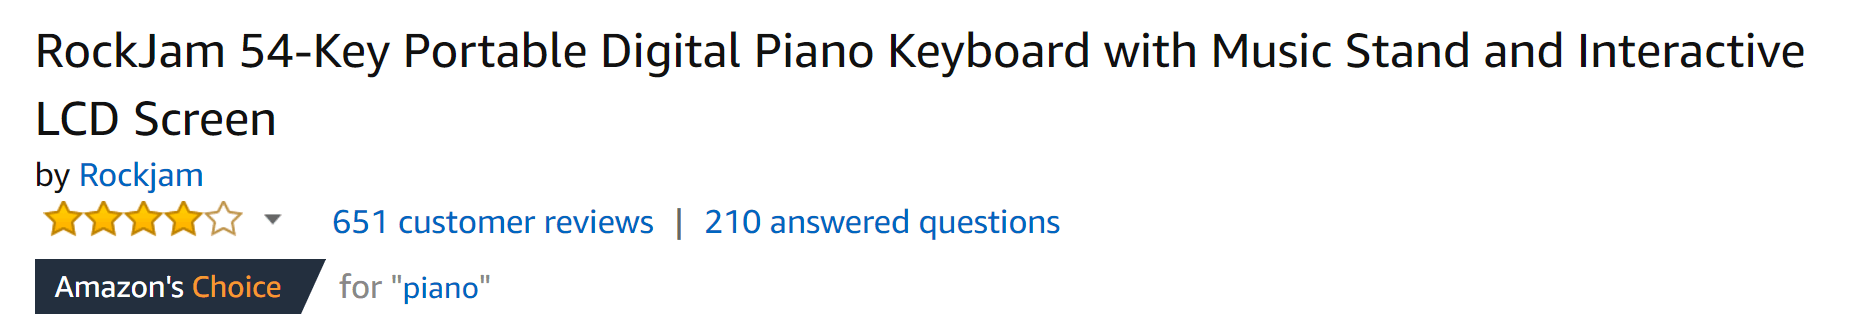 Keyboard with lots of reviews